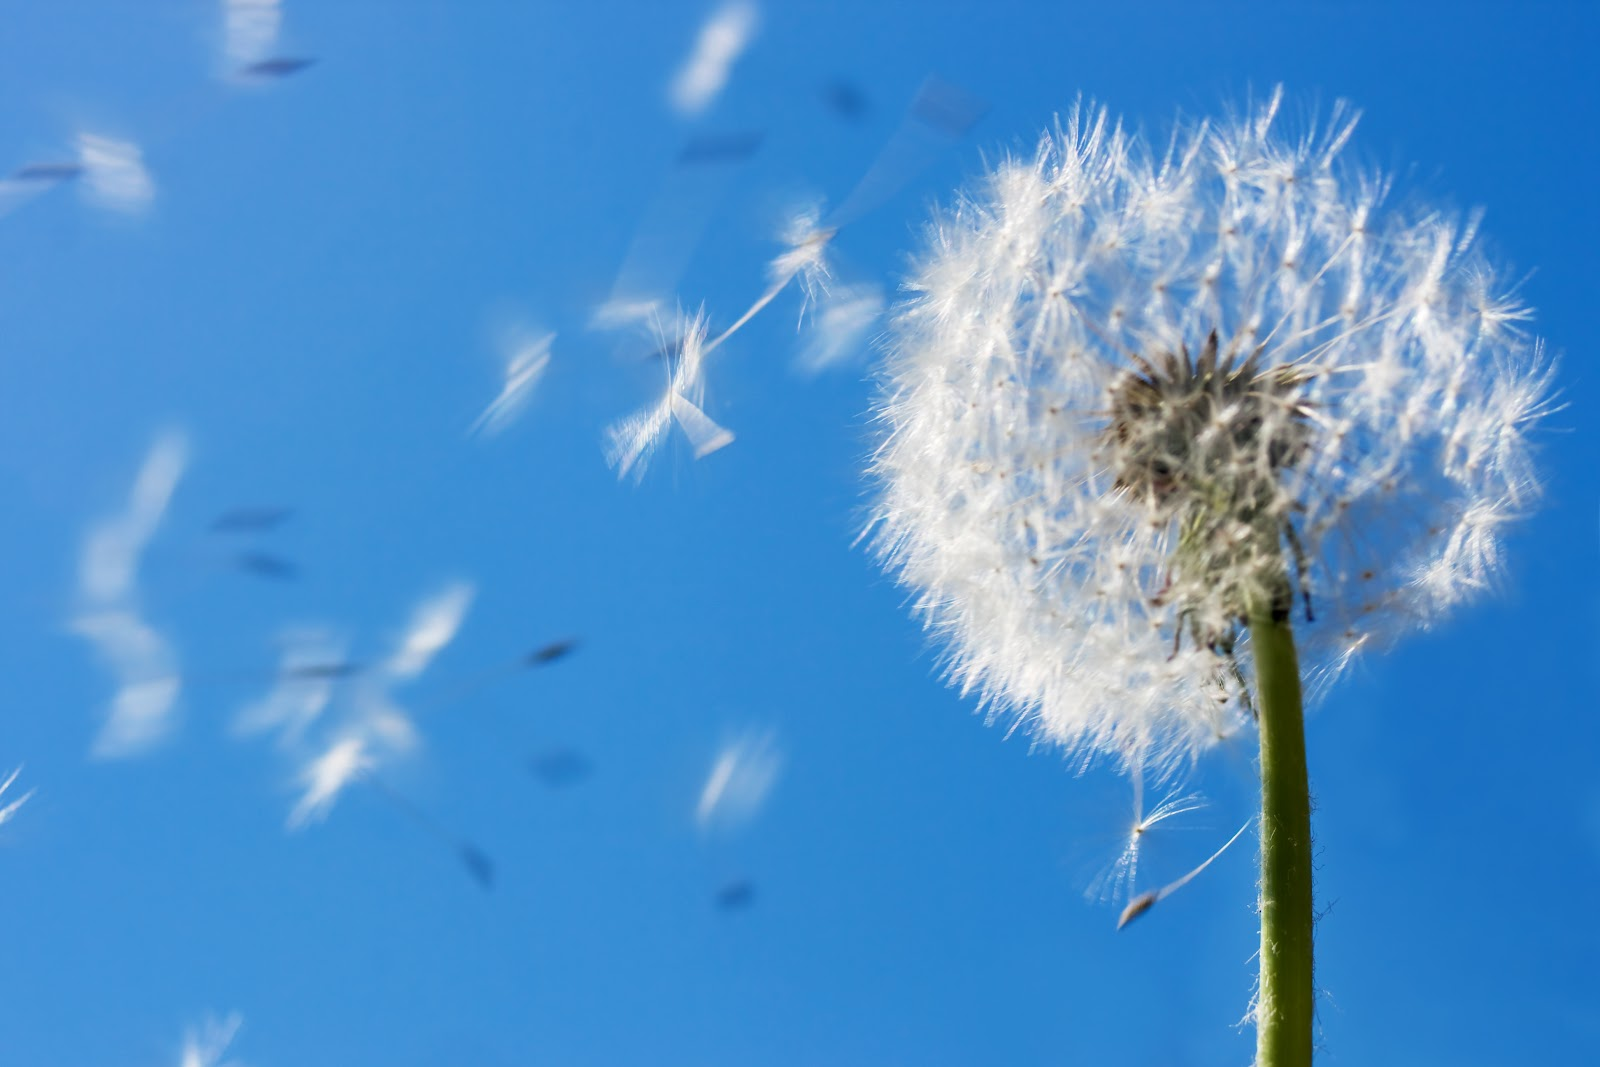 a dandelion going to seed and blowing away